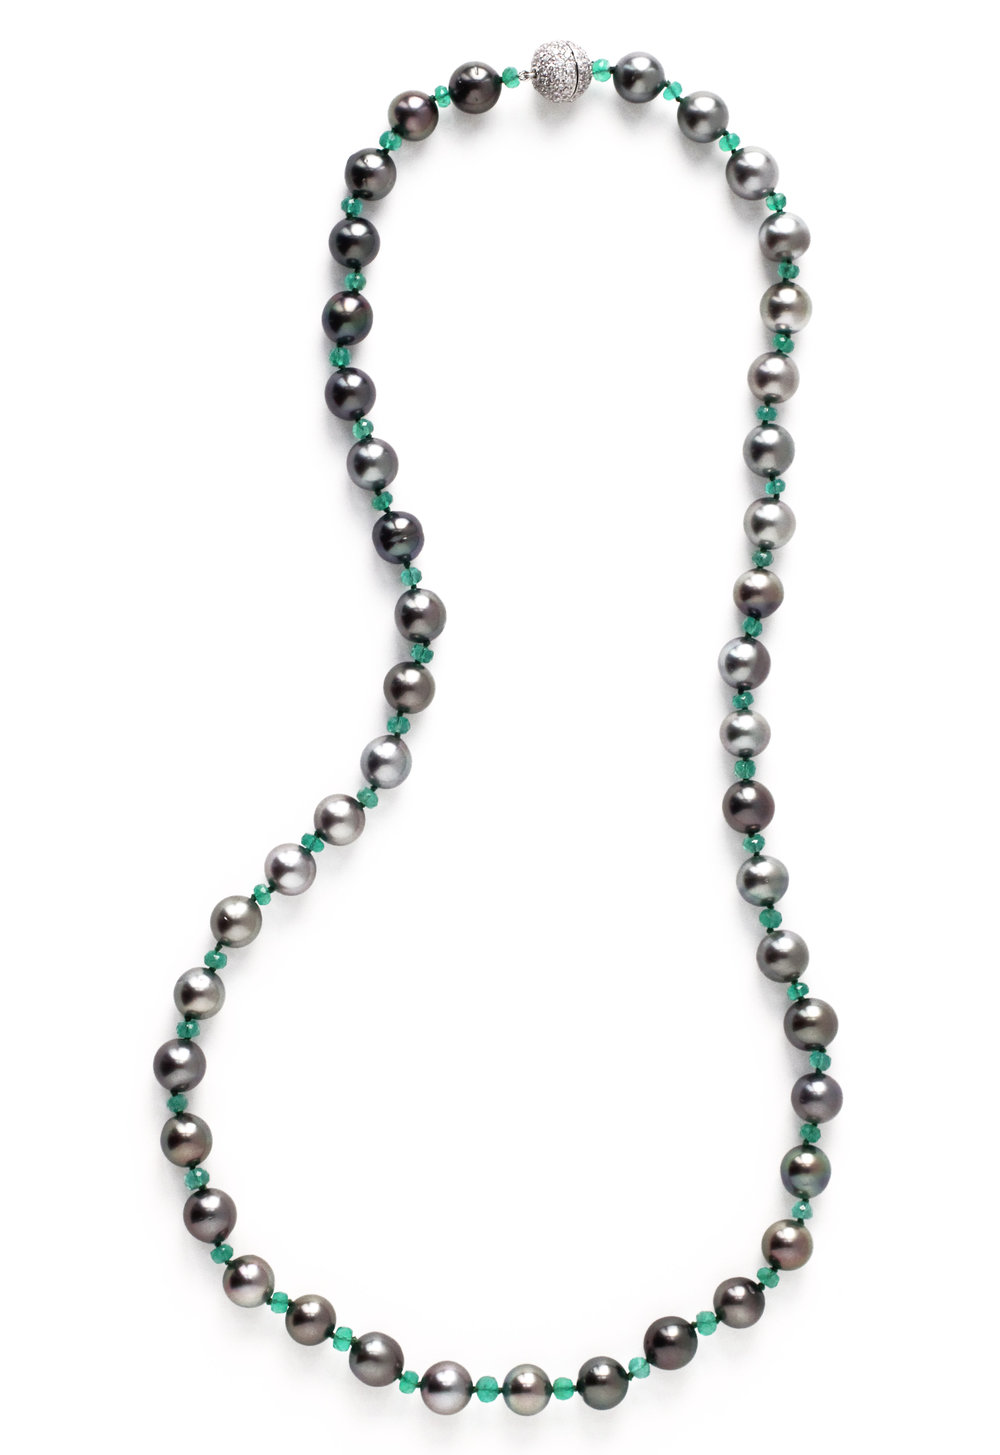 Black Pearl and Emerald Bead Necklace18kt Gold and Diamond Pave Clasp - Made to Order